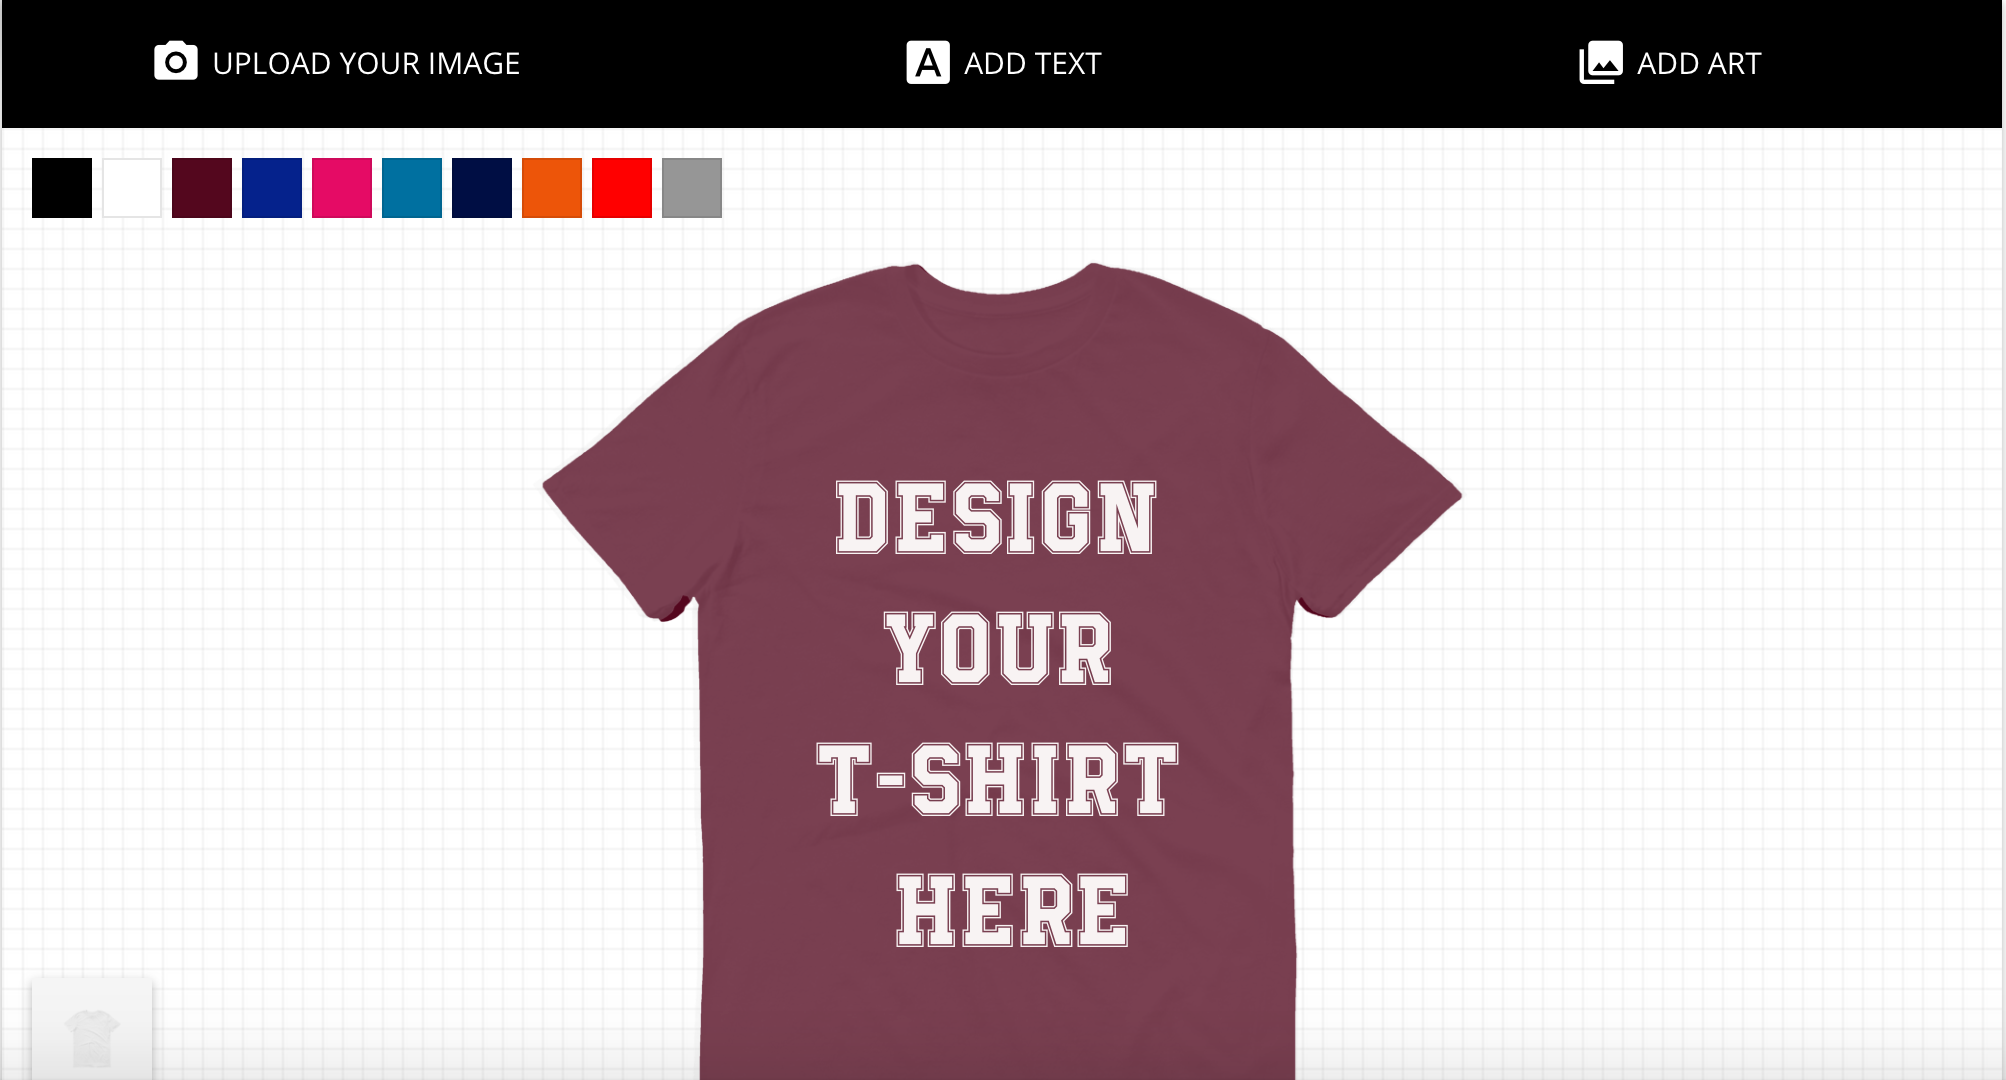 Class tee printing free t shirt design lab instant for T shirt printing design software